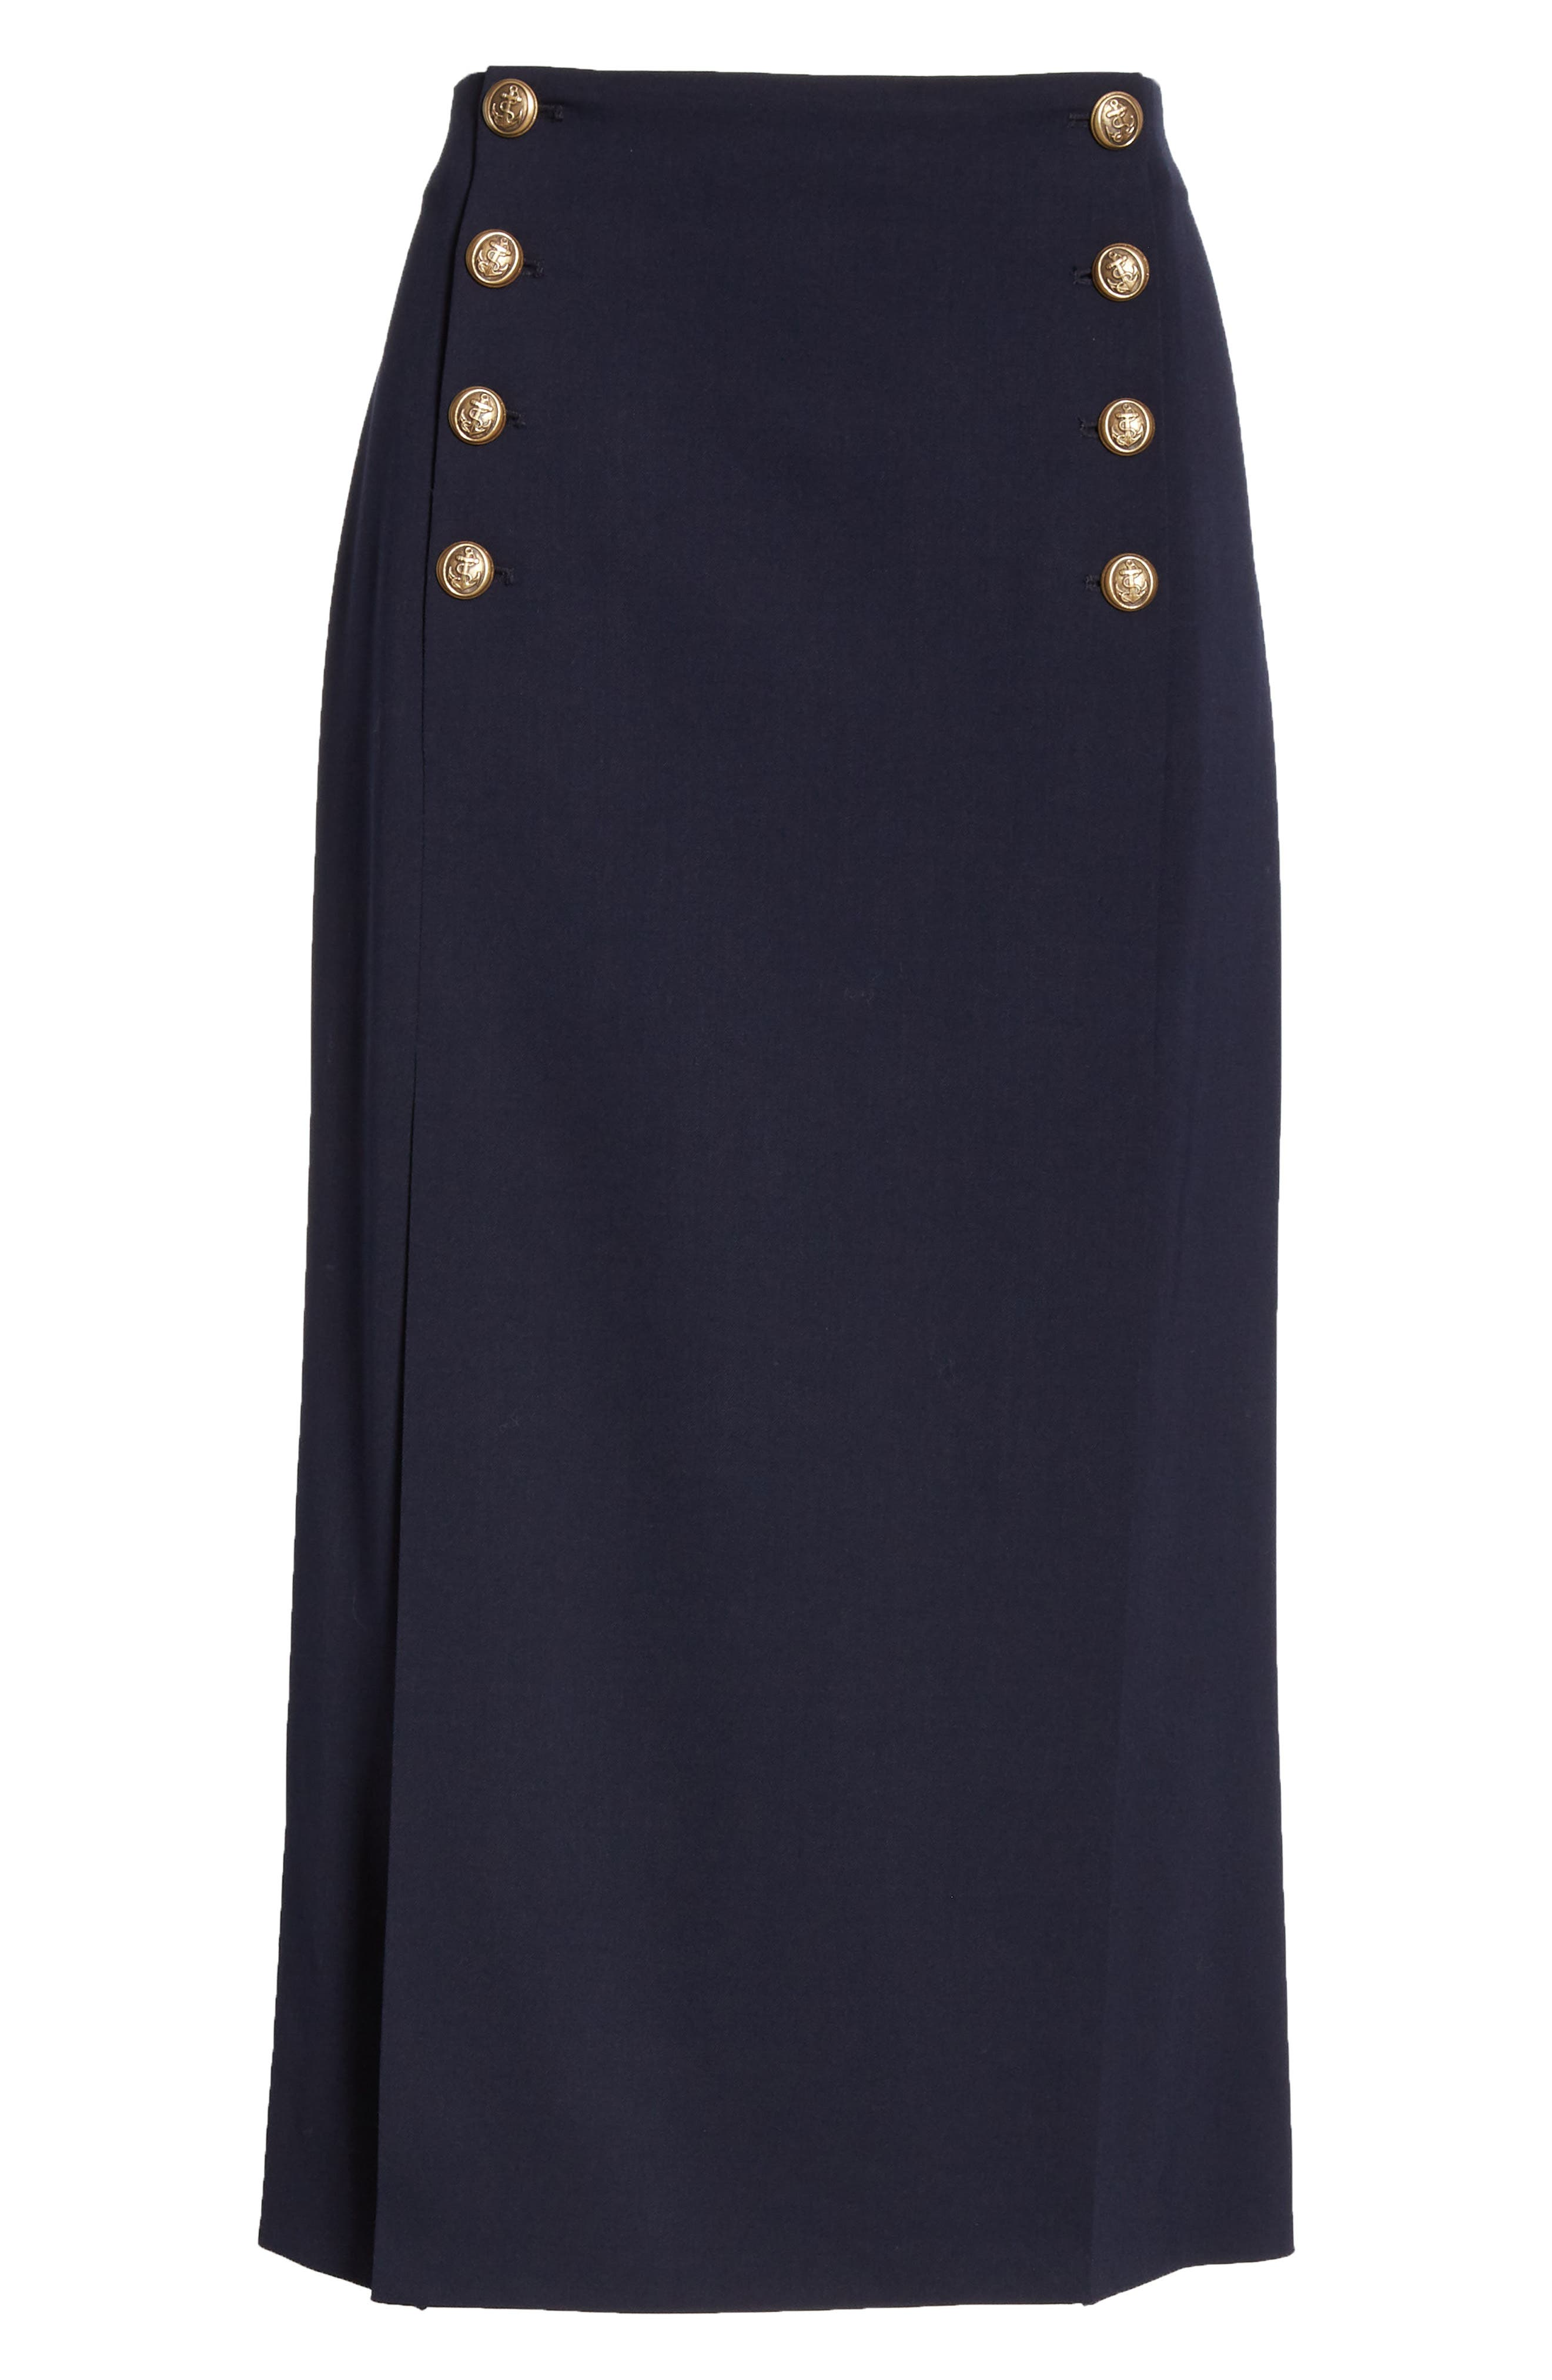 POLO RALPH LAUREN, A-Line Skirt, Alternate thumbnail 6, color, NAVY